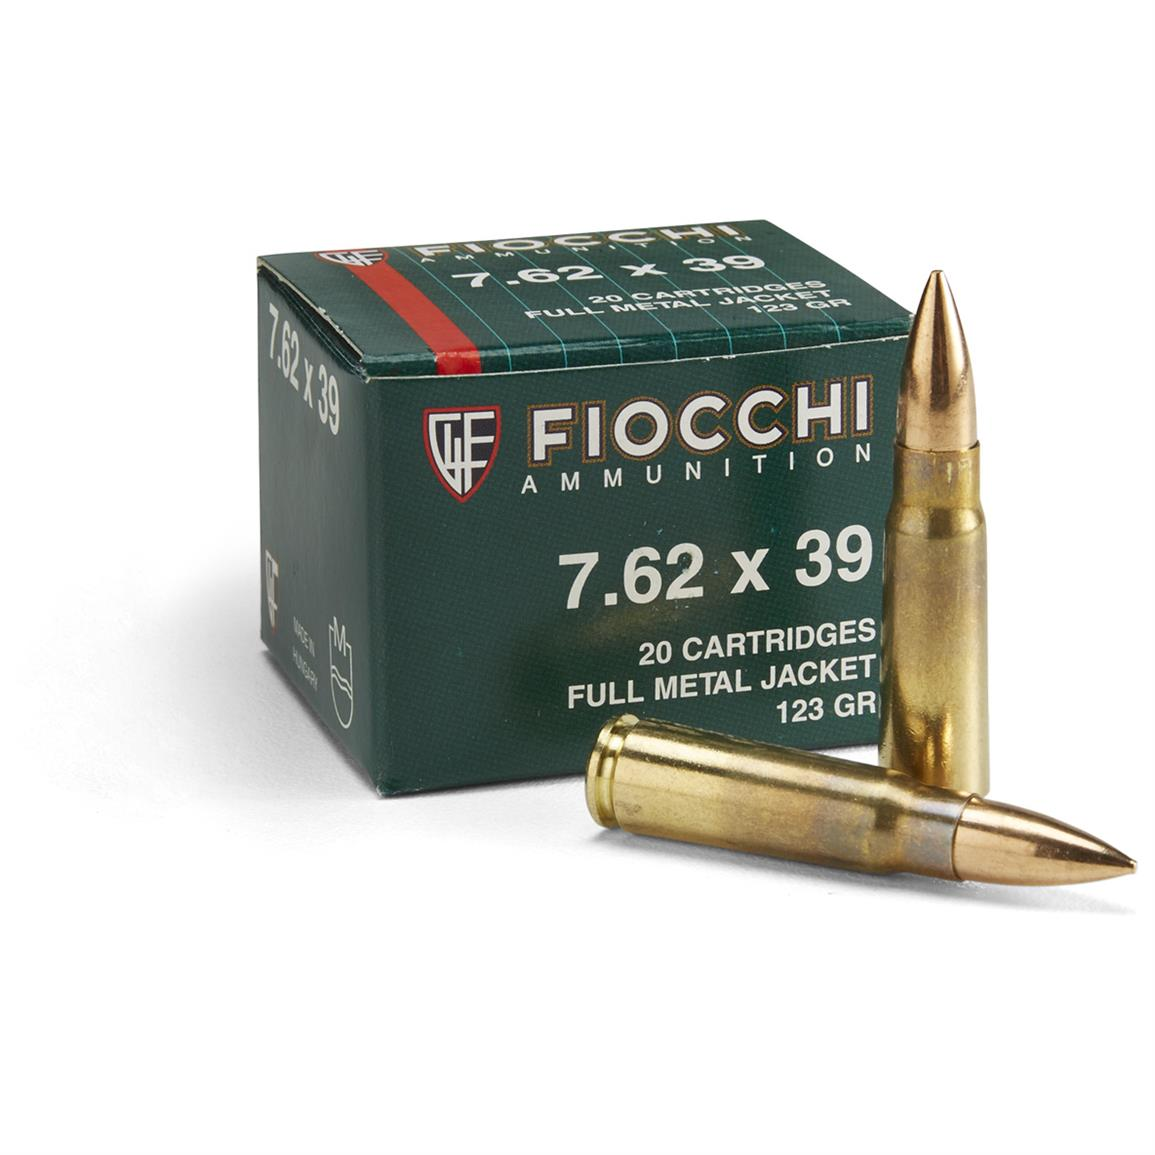 1,000 rounds 123 Grain 7.62x39 FMJ Ammo